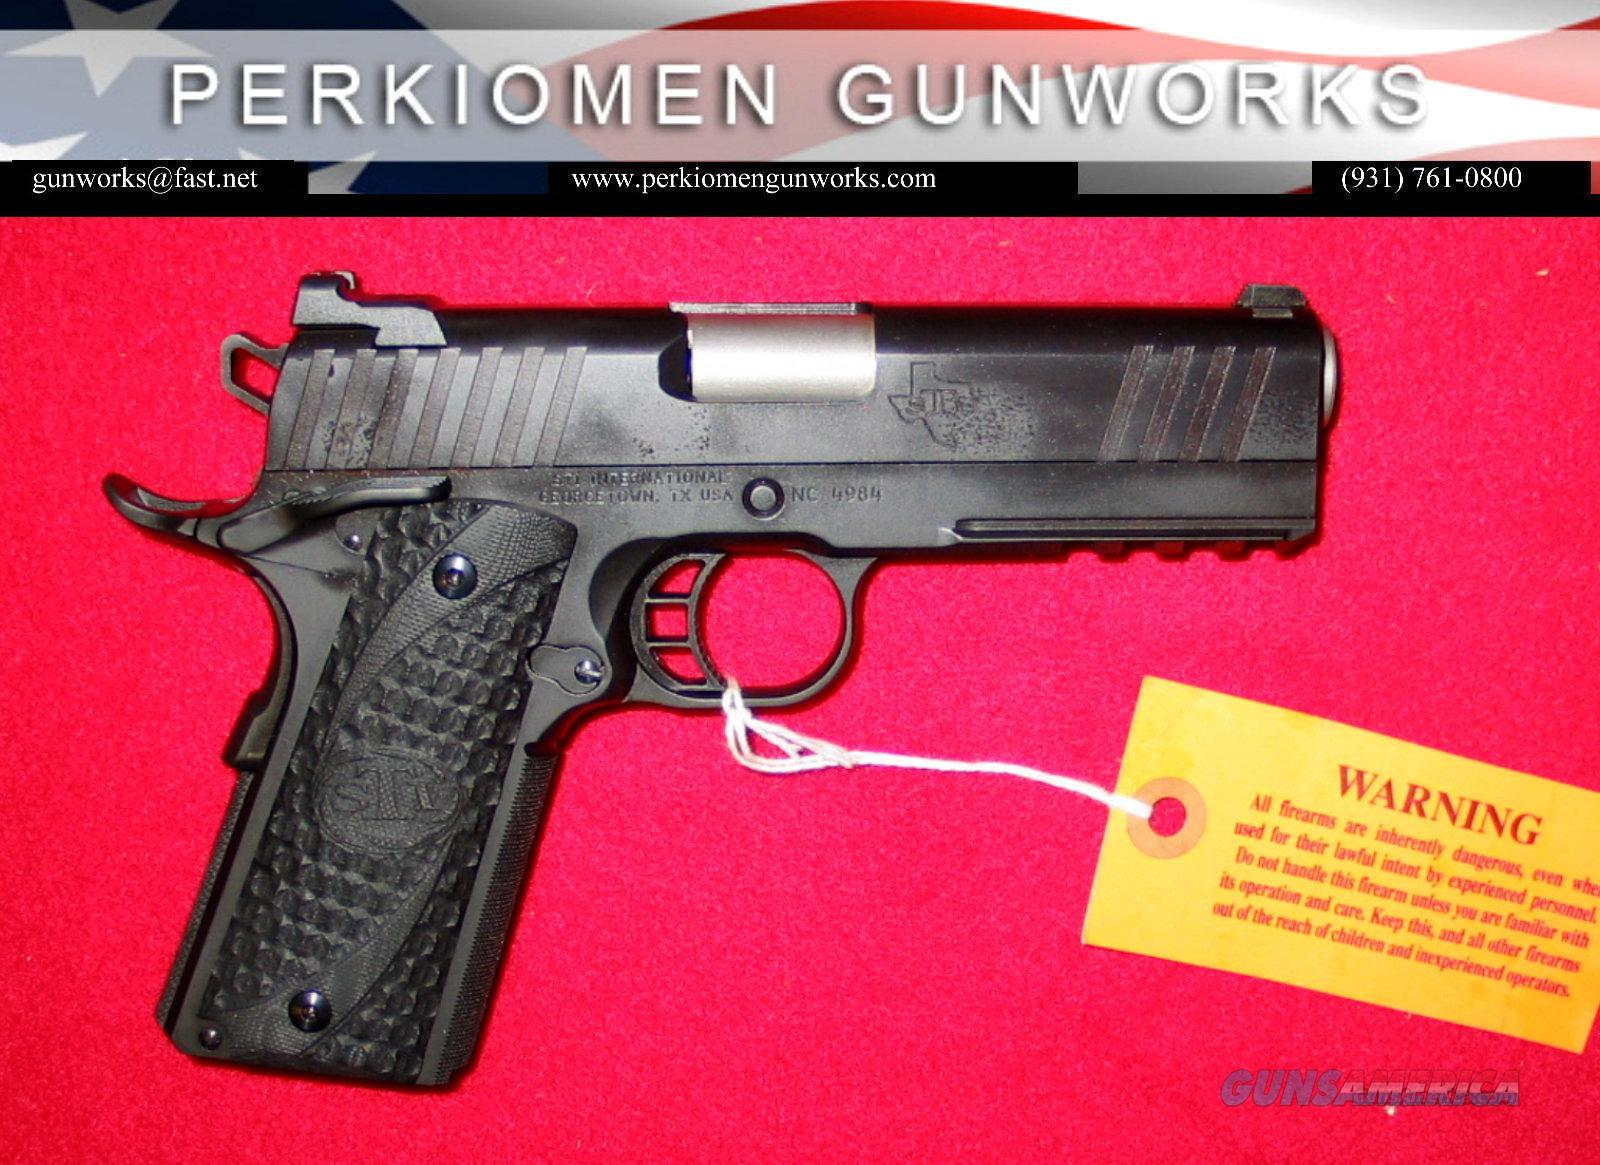 "4.0 Tactical, 45acp, Single Stack, 4.26"" w/Rail - NIB  Guns > Pistols > STI Pistols"